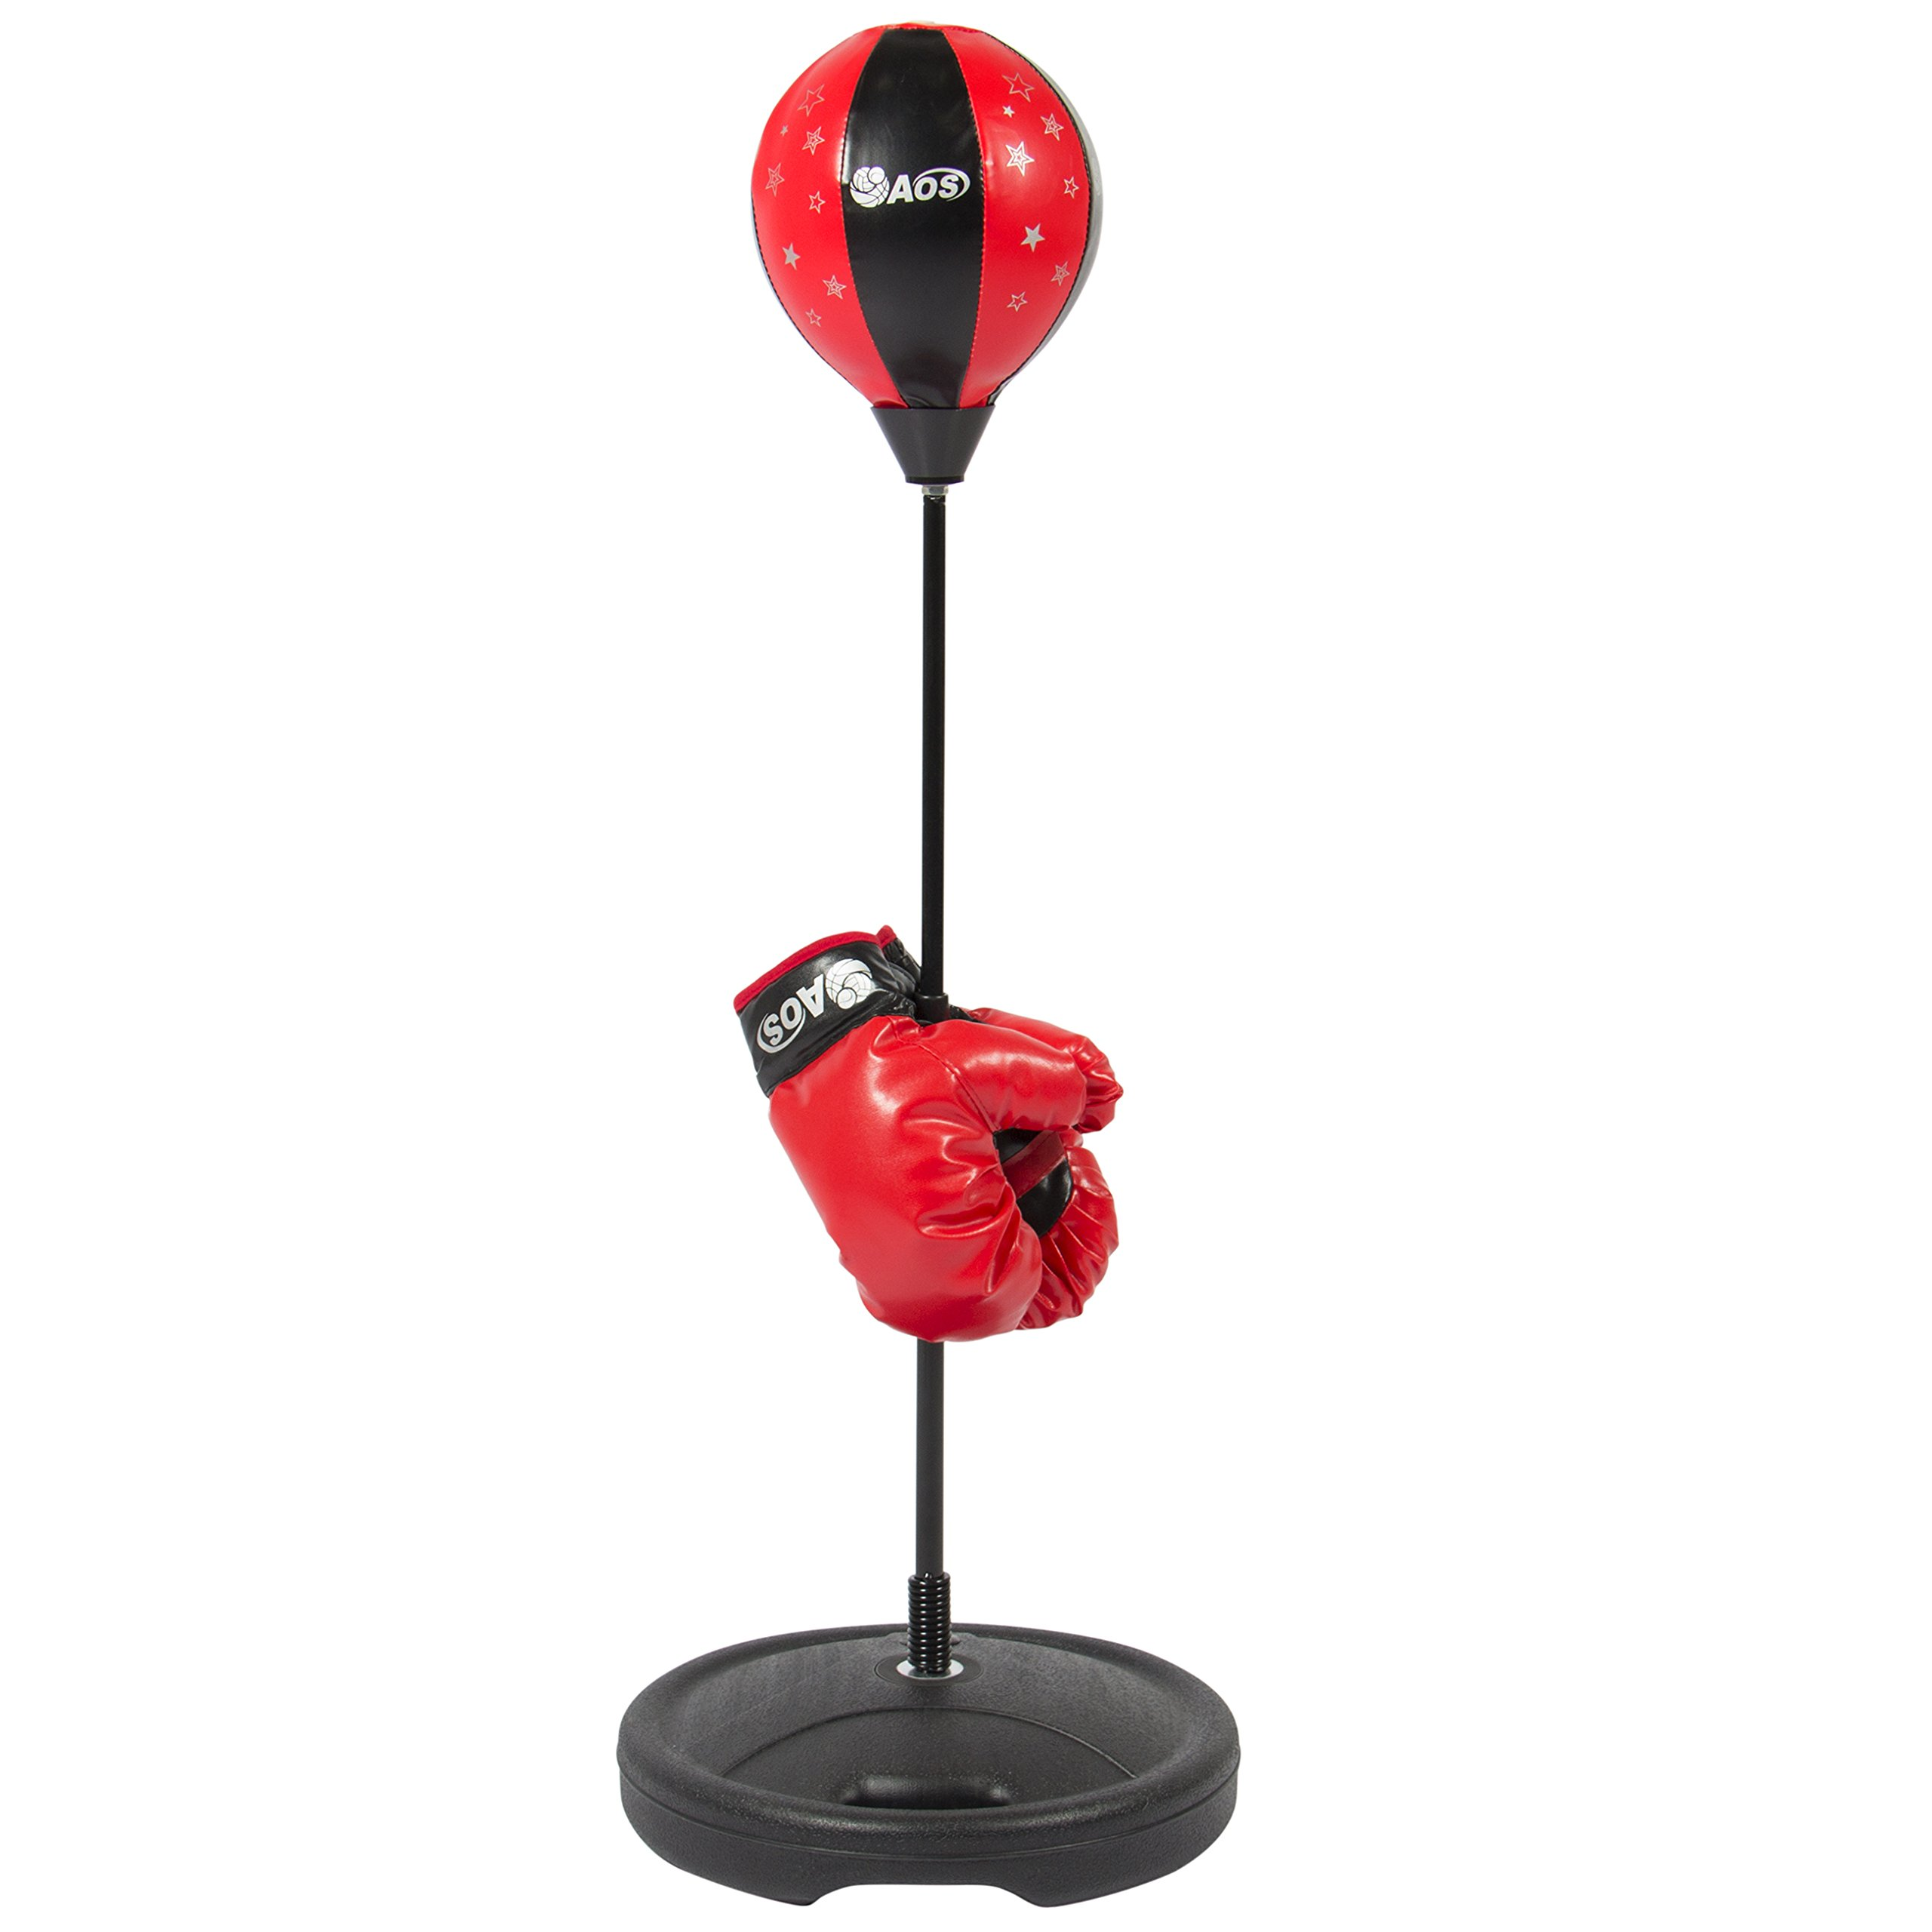 Best Choice Products Kids Freestanding Begginer Boxing Set w/Gloves and Punching Bag for Children - Black/Red